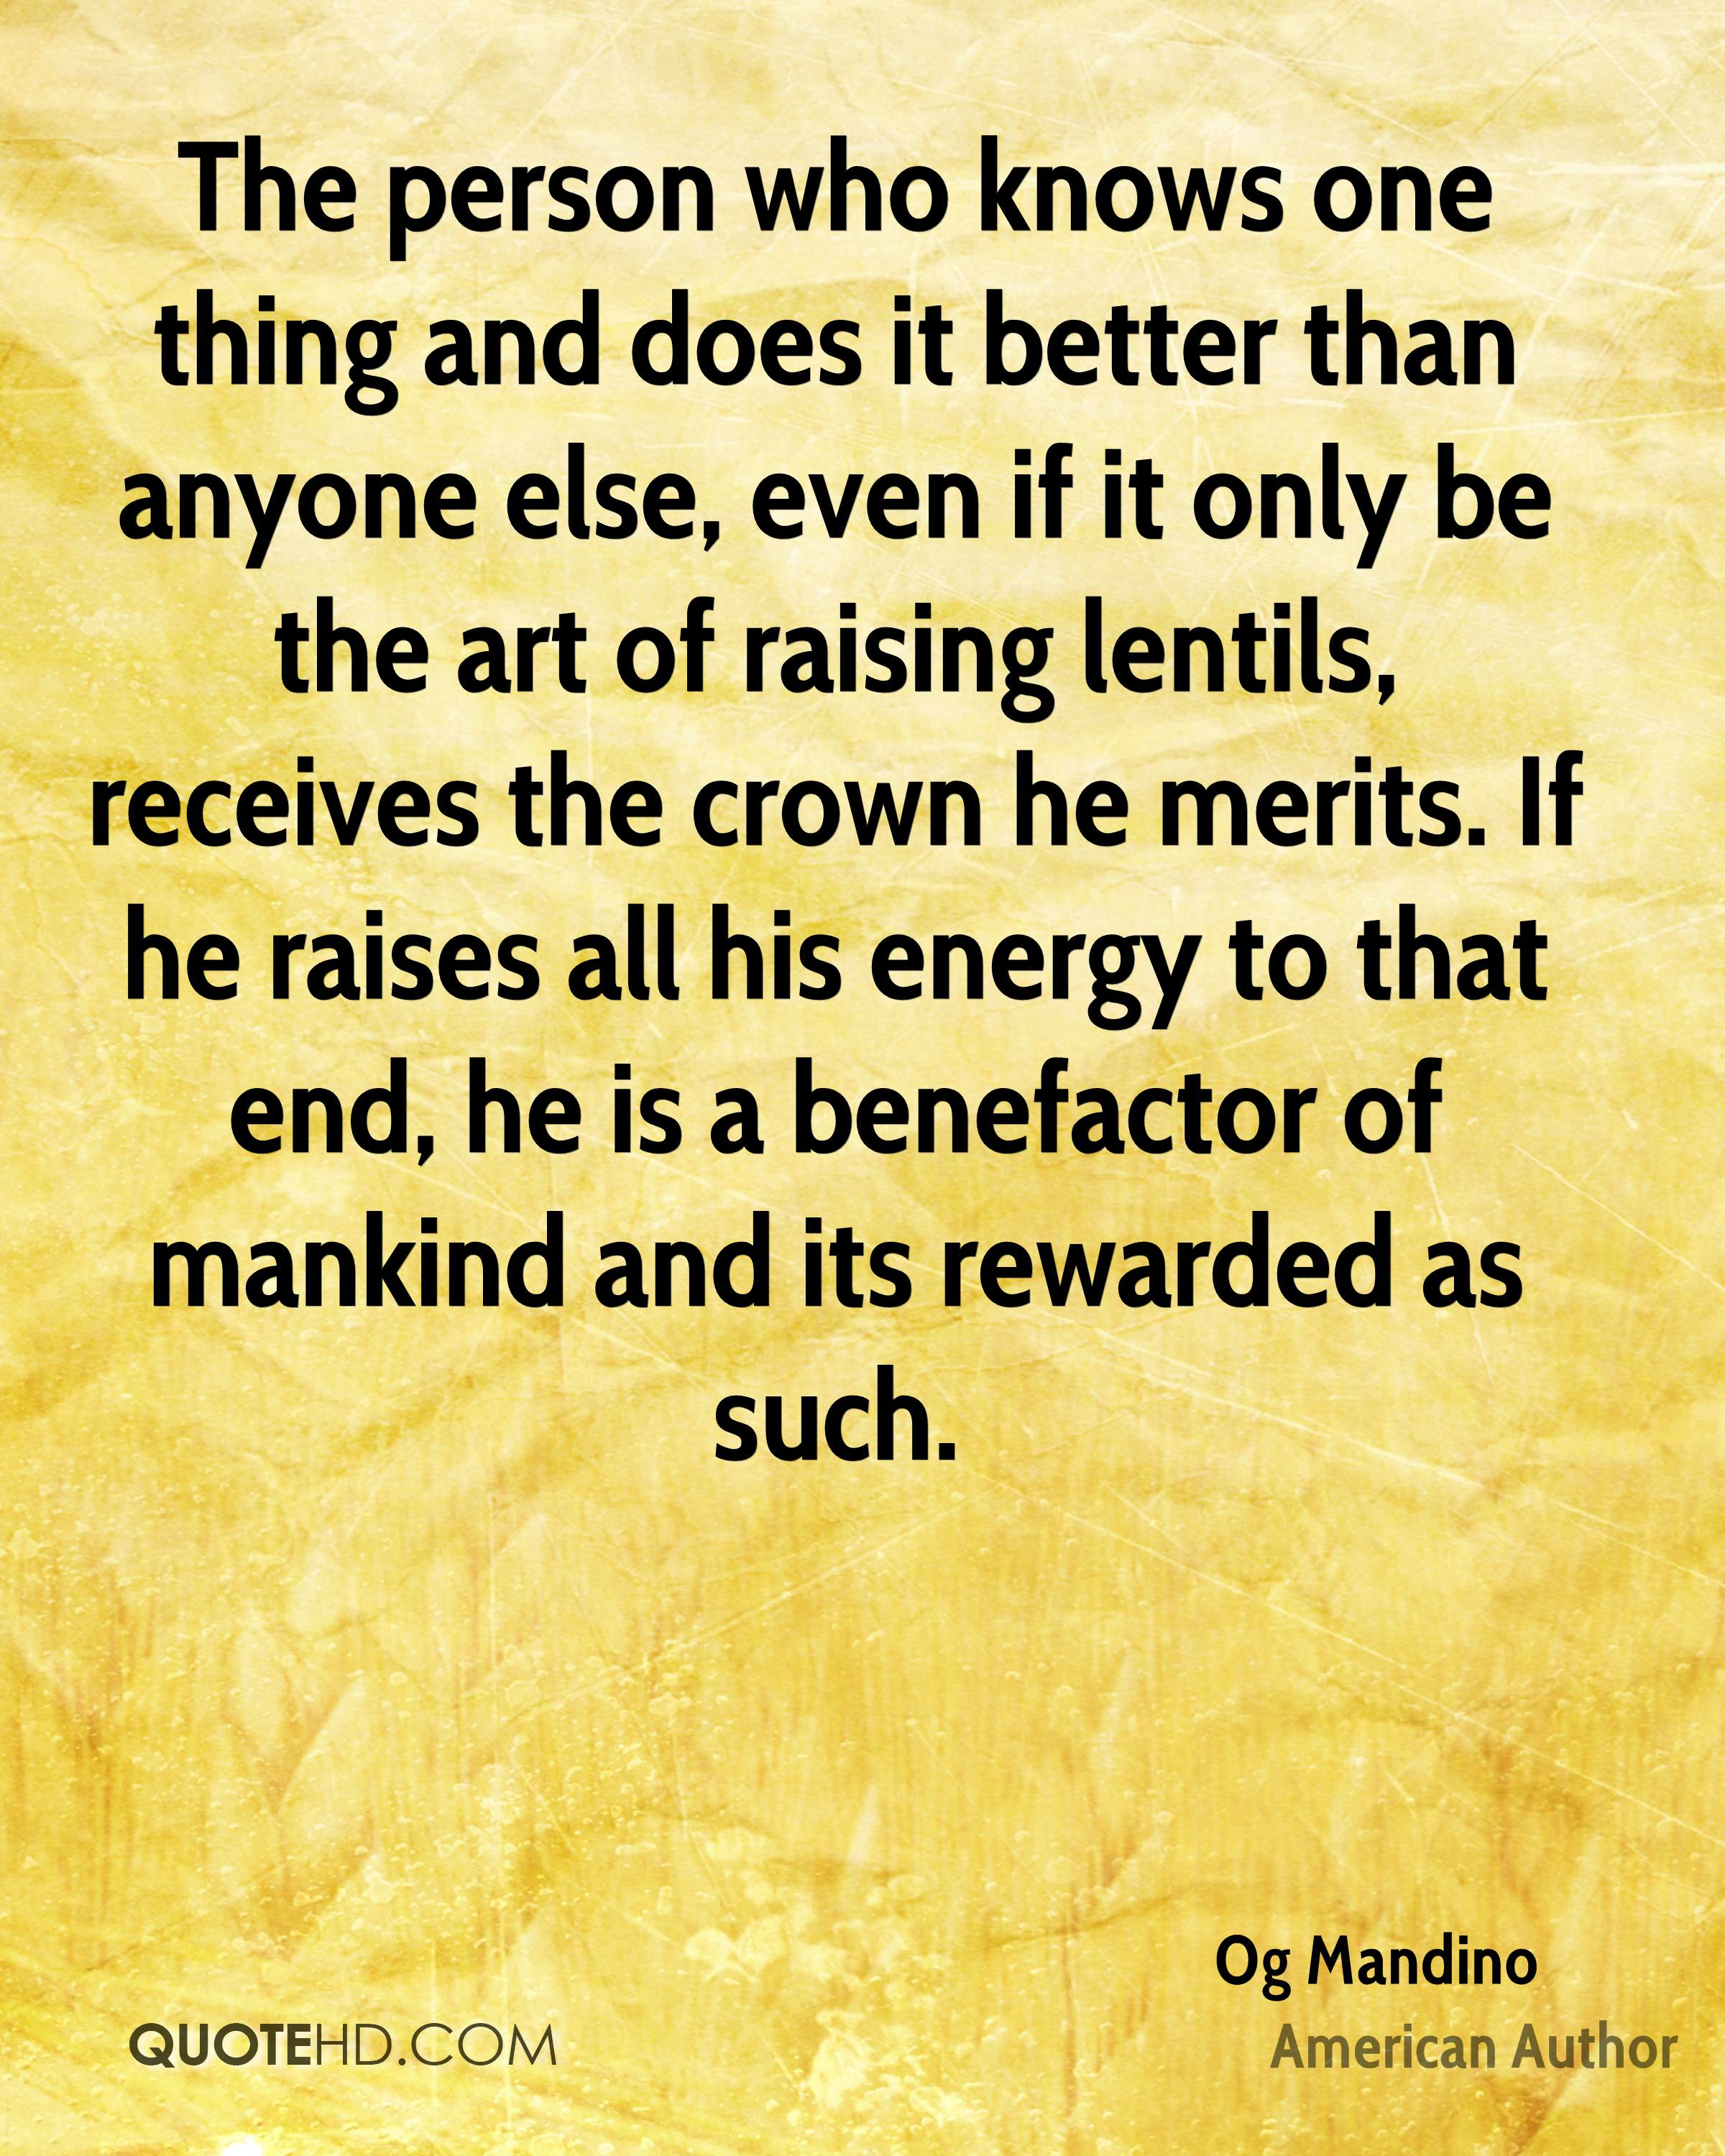 The person who knows one thing and does it better than anyone else, even if it only be the art of raising lentils, receives the crown he merits. If he raises all his energy to that end, he is a benefactor of mankind and its rewarded as such.